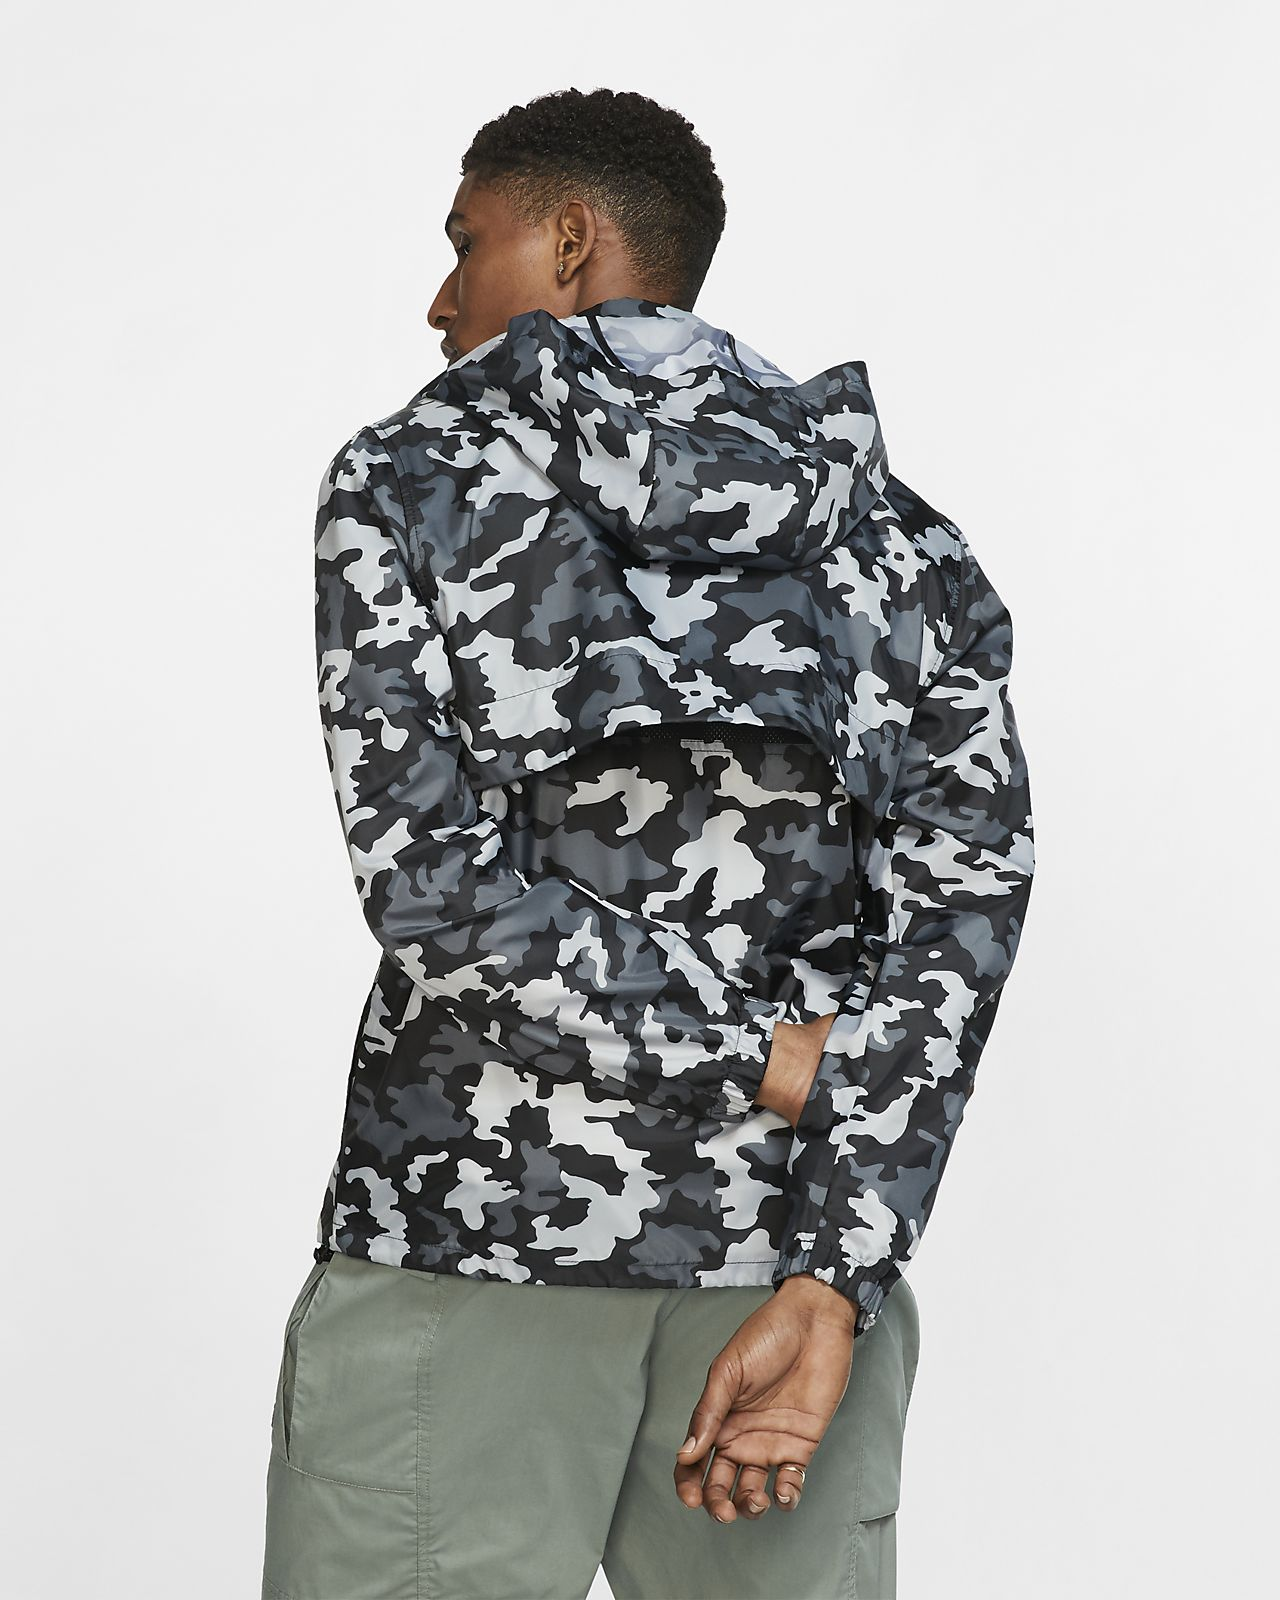 Jacket Men's Hooded Sportswear Camo Nike 76yfYbg